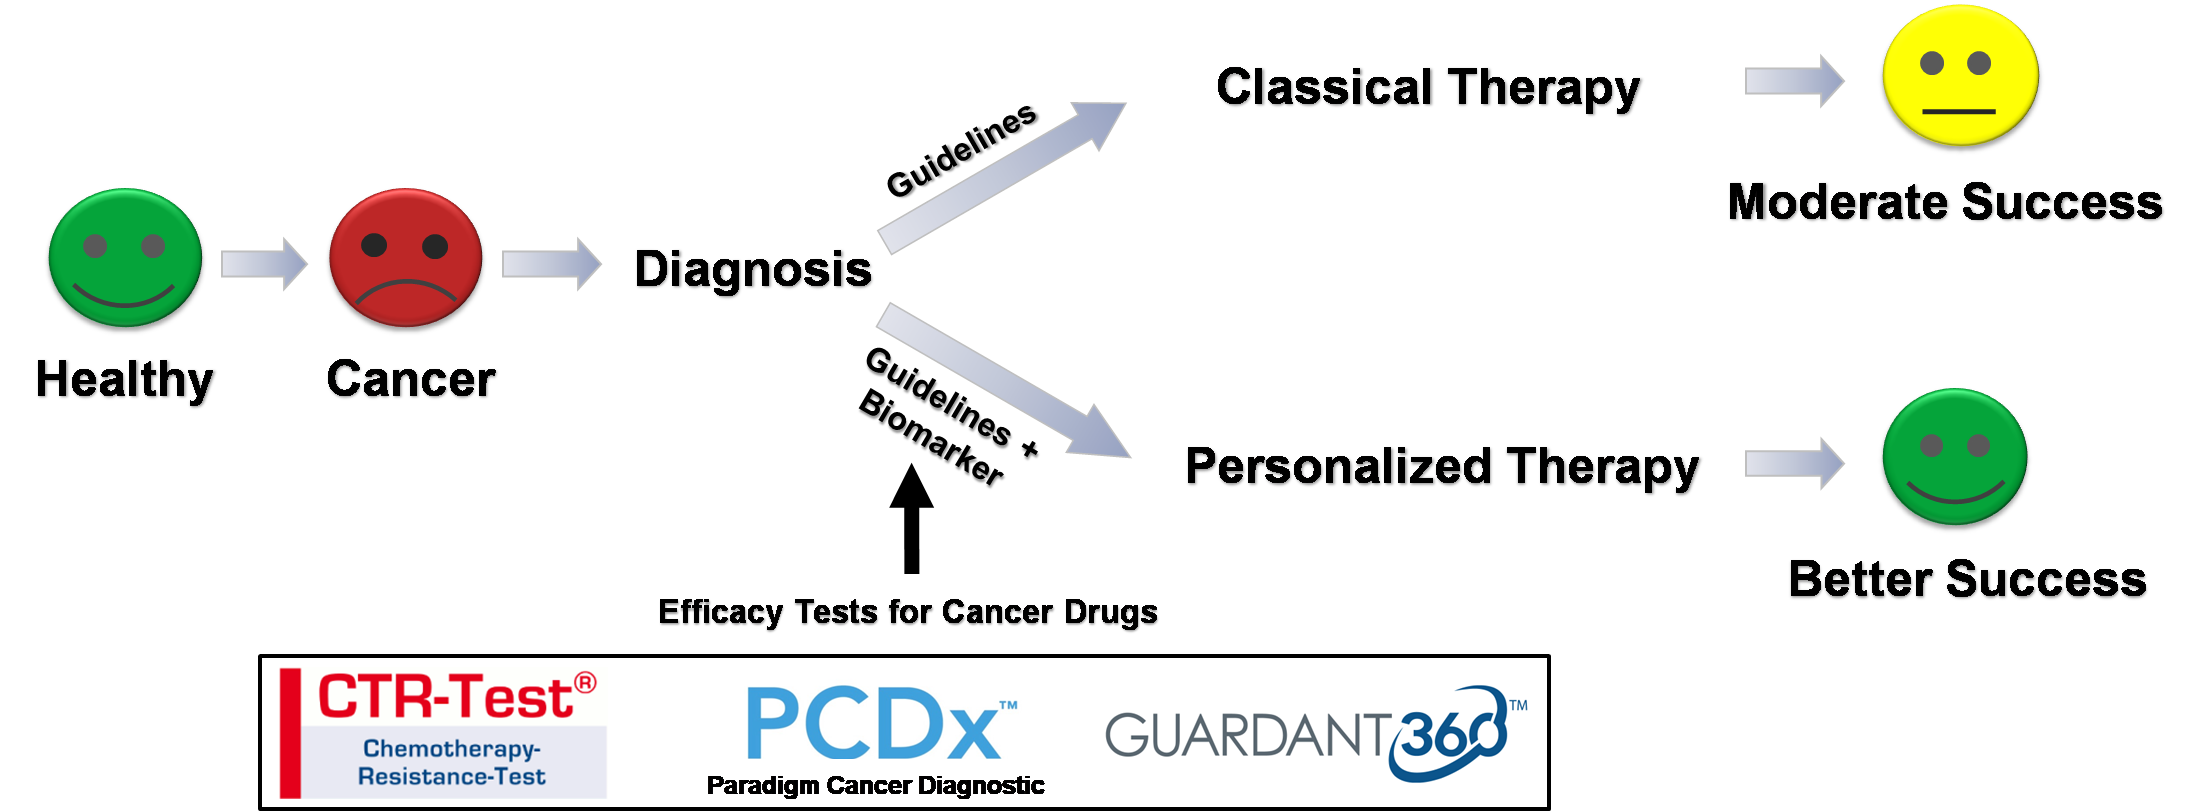 Personalized Medicine by using the right diganostic before start of therapy